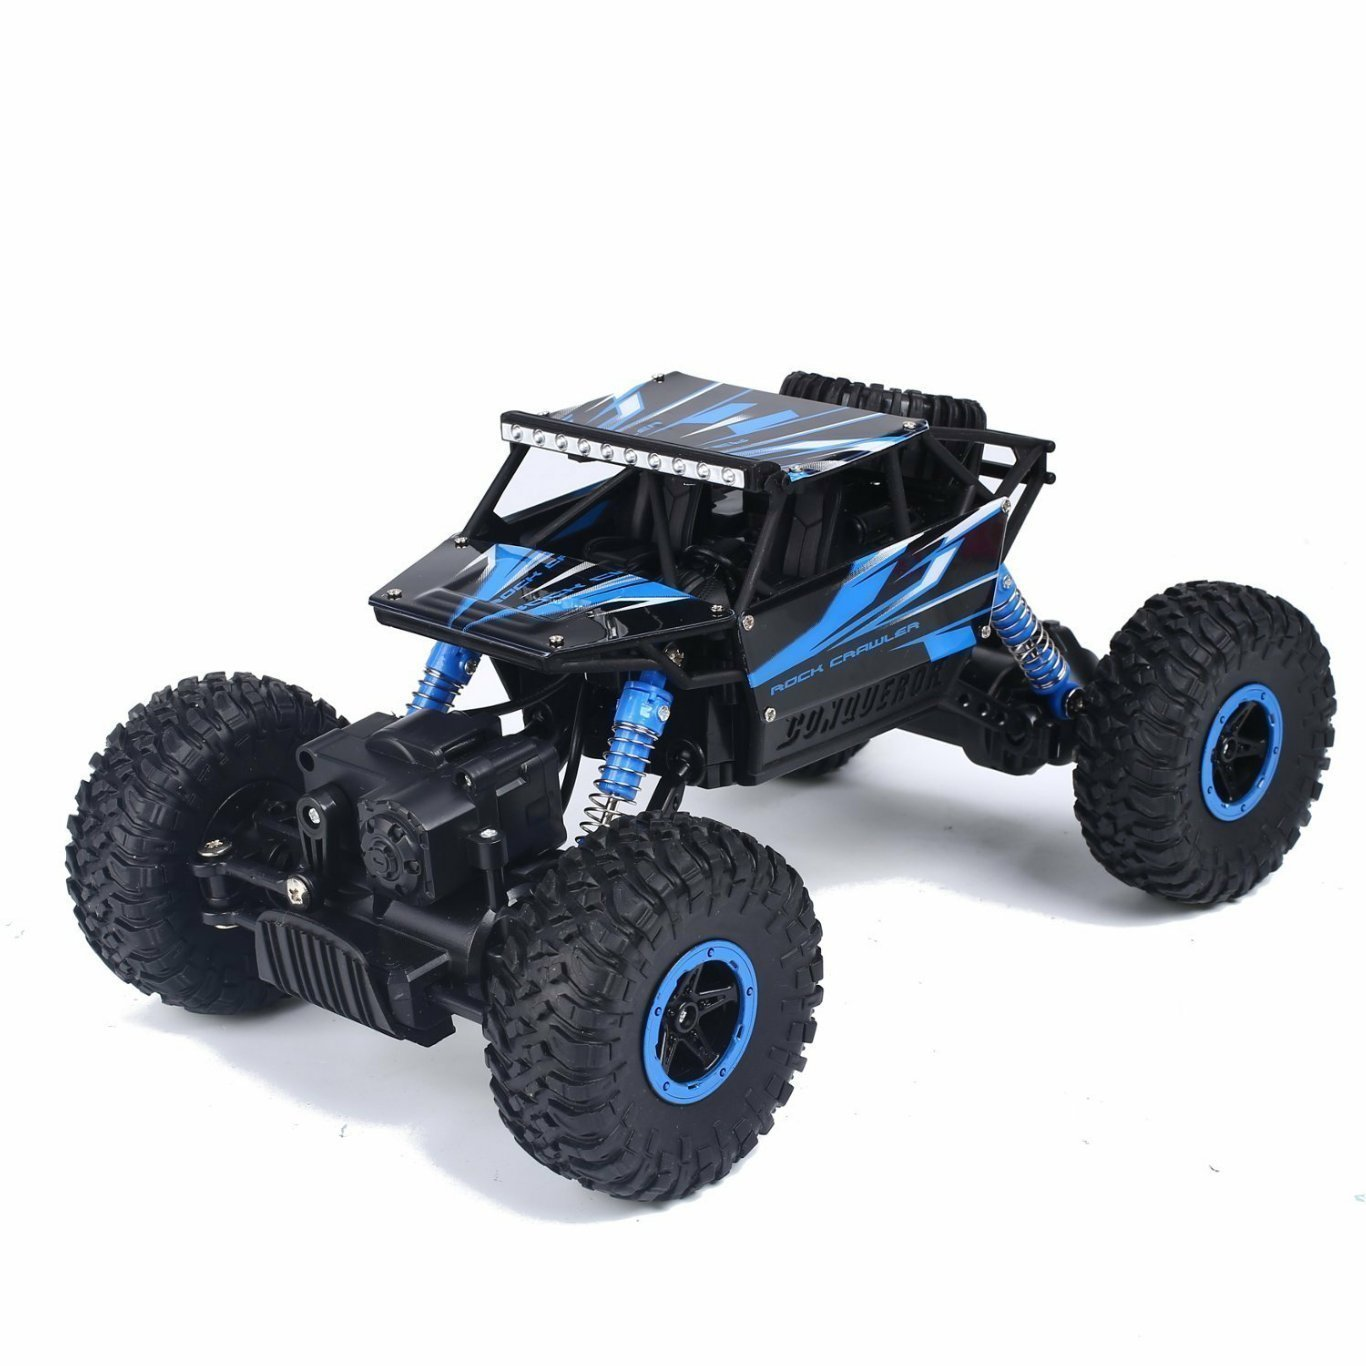 Cheap Fast Remote Cars Find Fast Remote Cars Deals On Line At